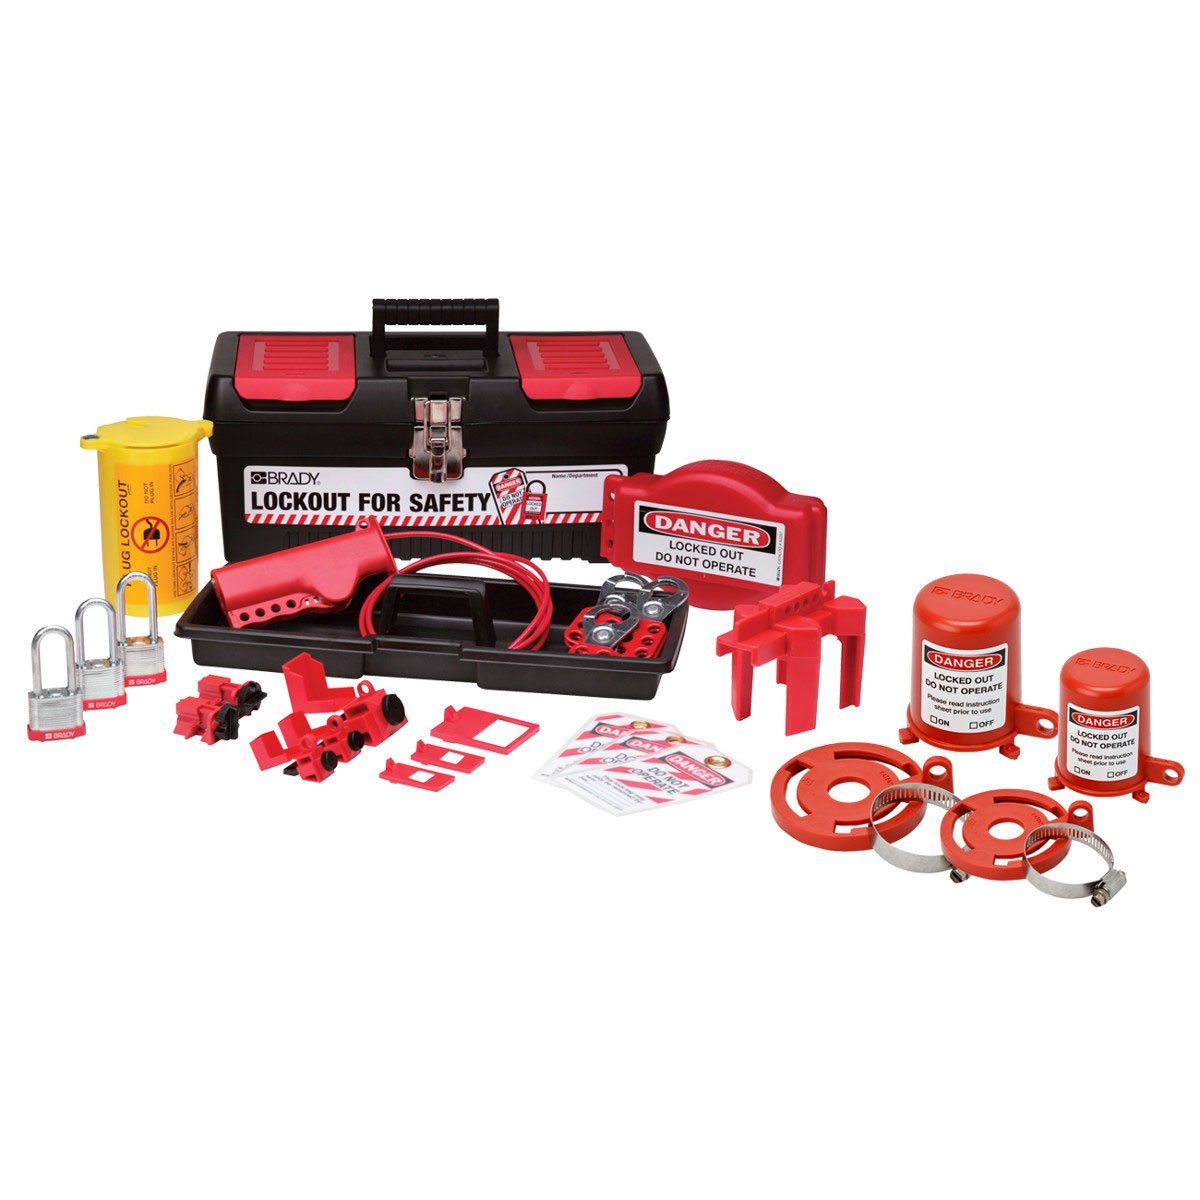 Brady Valve and Electrical Lockout Toolbox Kit, Includes 3 Steel Padlocks